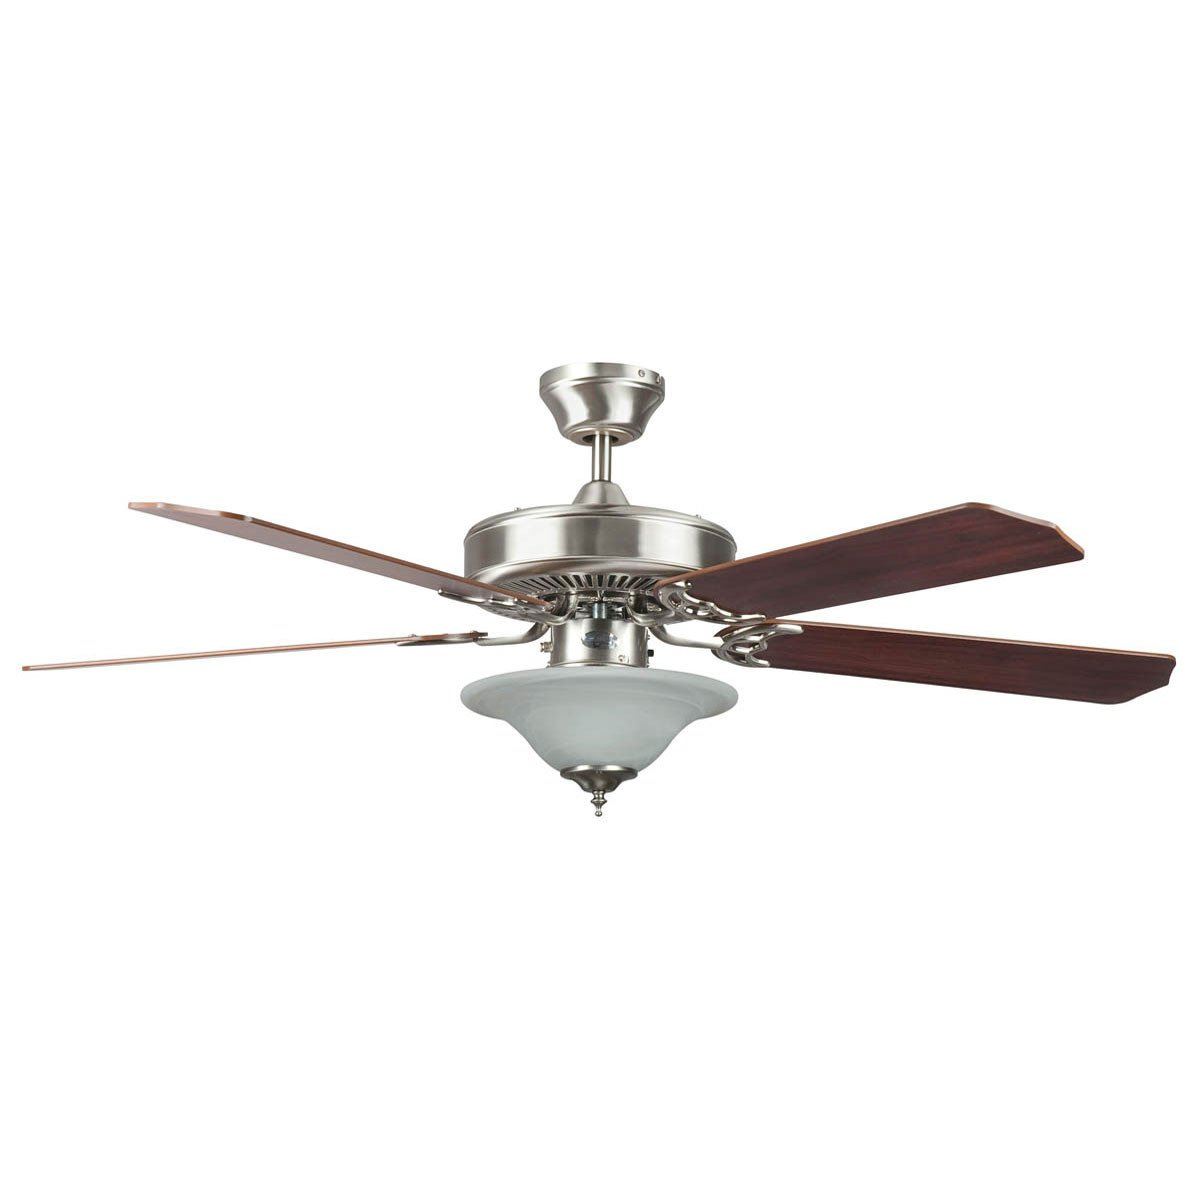 "Concord Fans 52"" Heritage Square Stainless Steel Ceiling Fan with Light Kit"